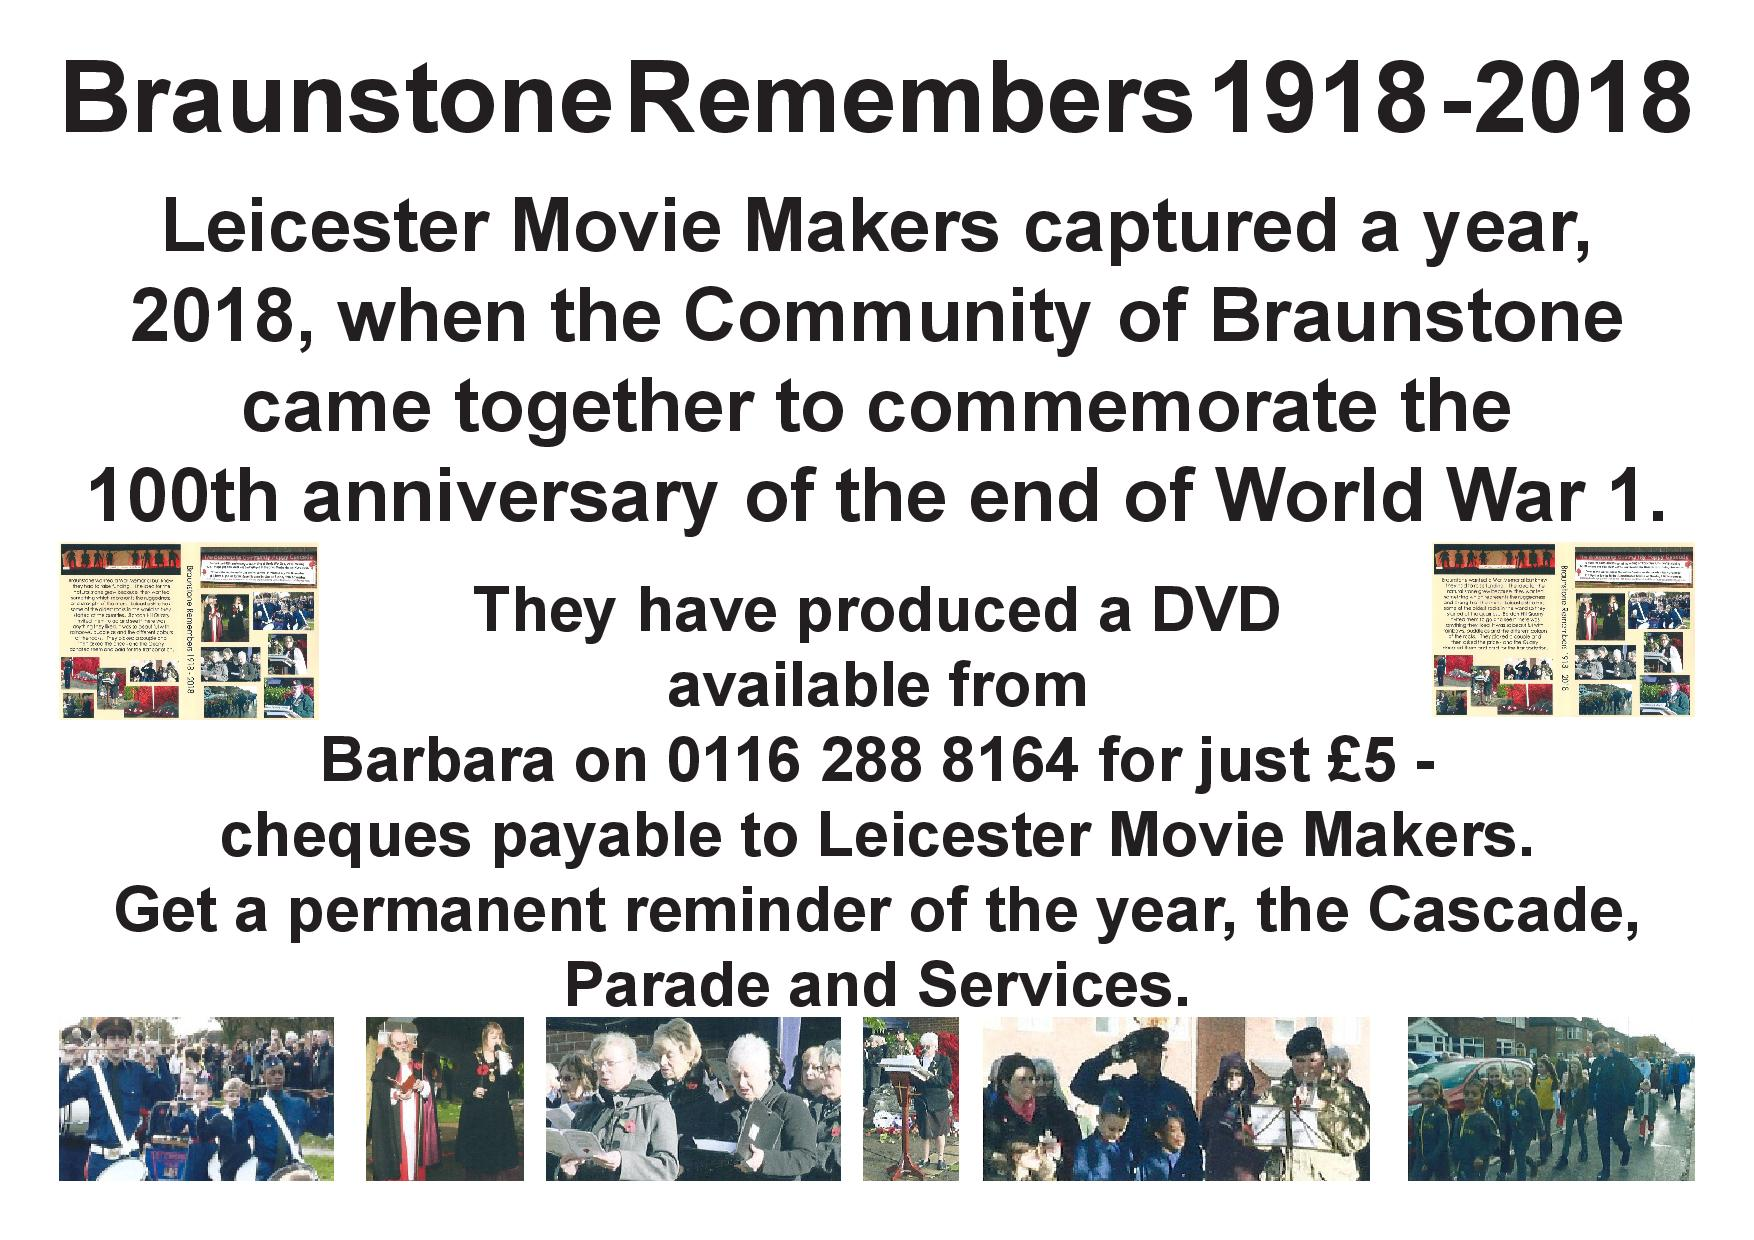 leicester Movies Makers